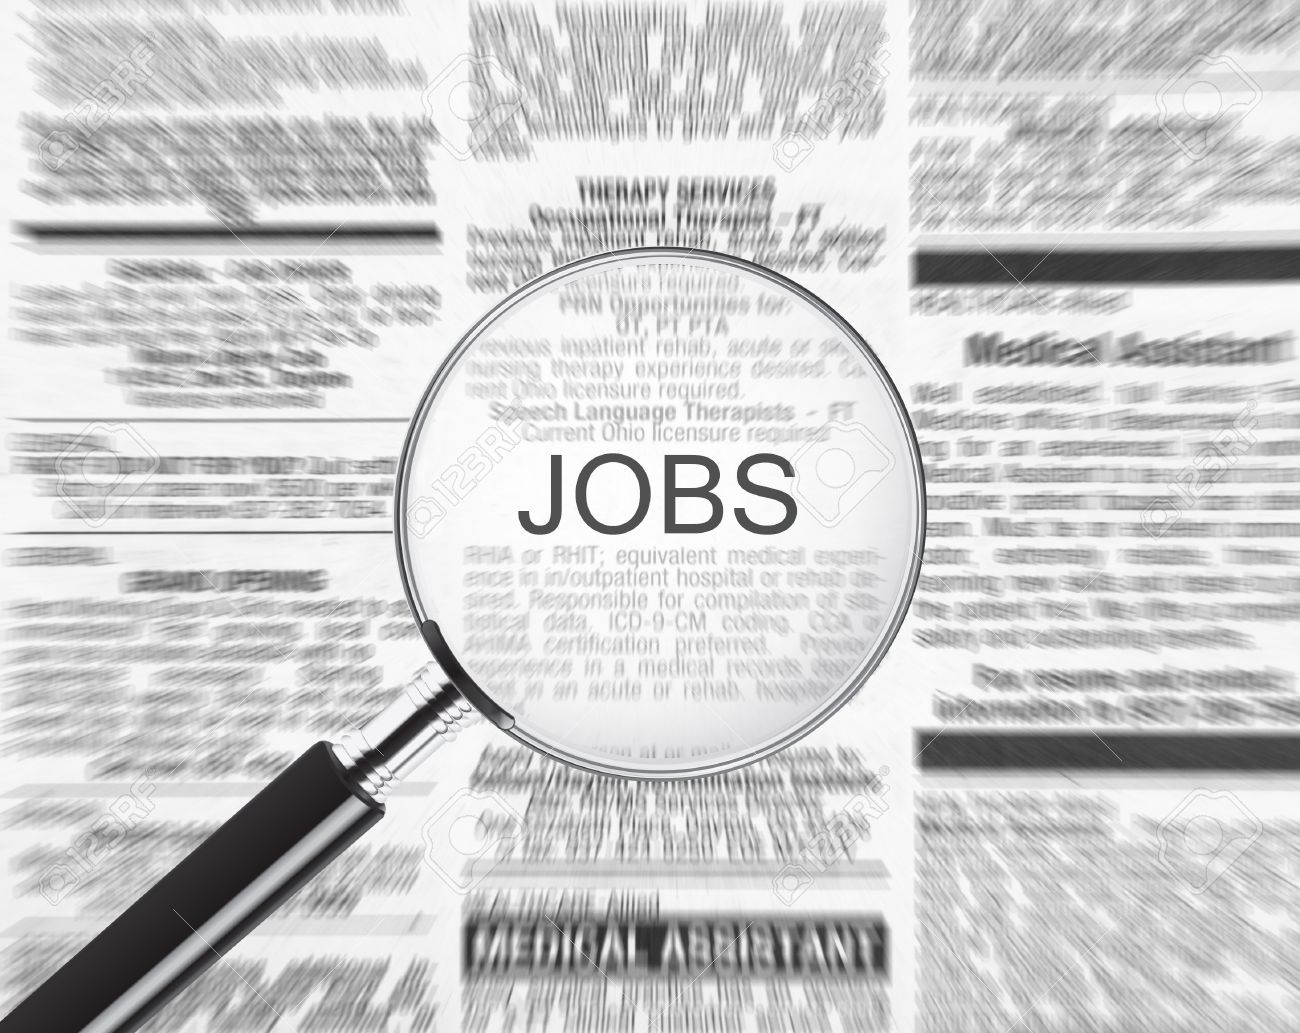 Jobs ad in a newspaper through a magnifying glass Stock Photo - 6406796